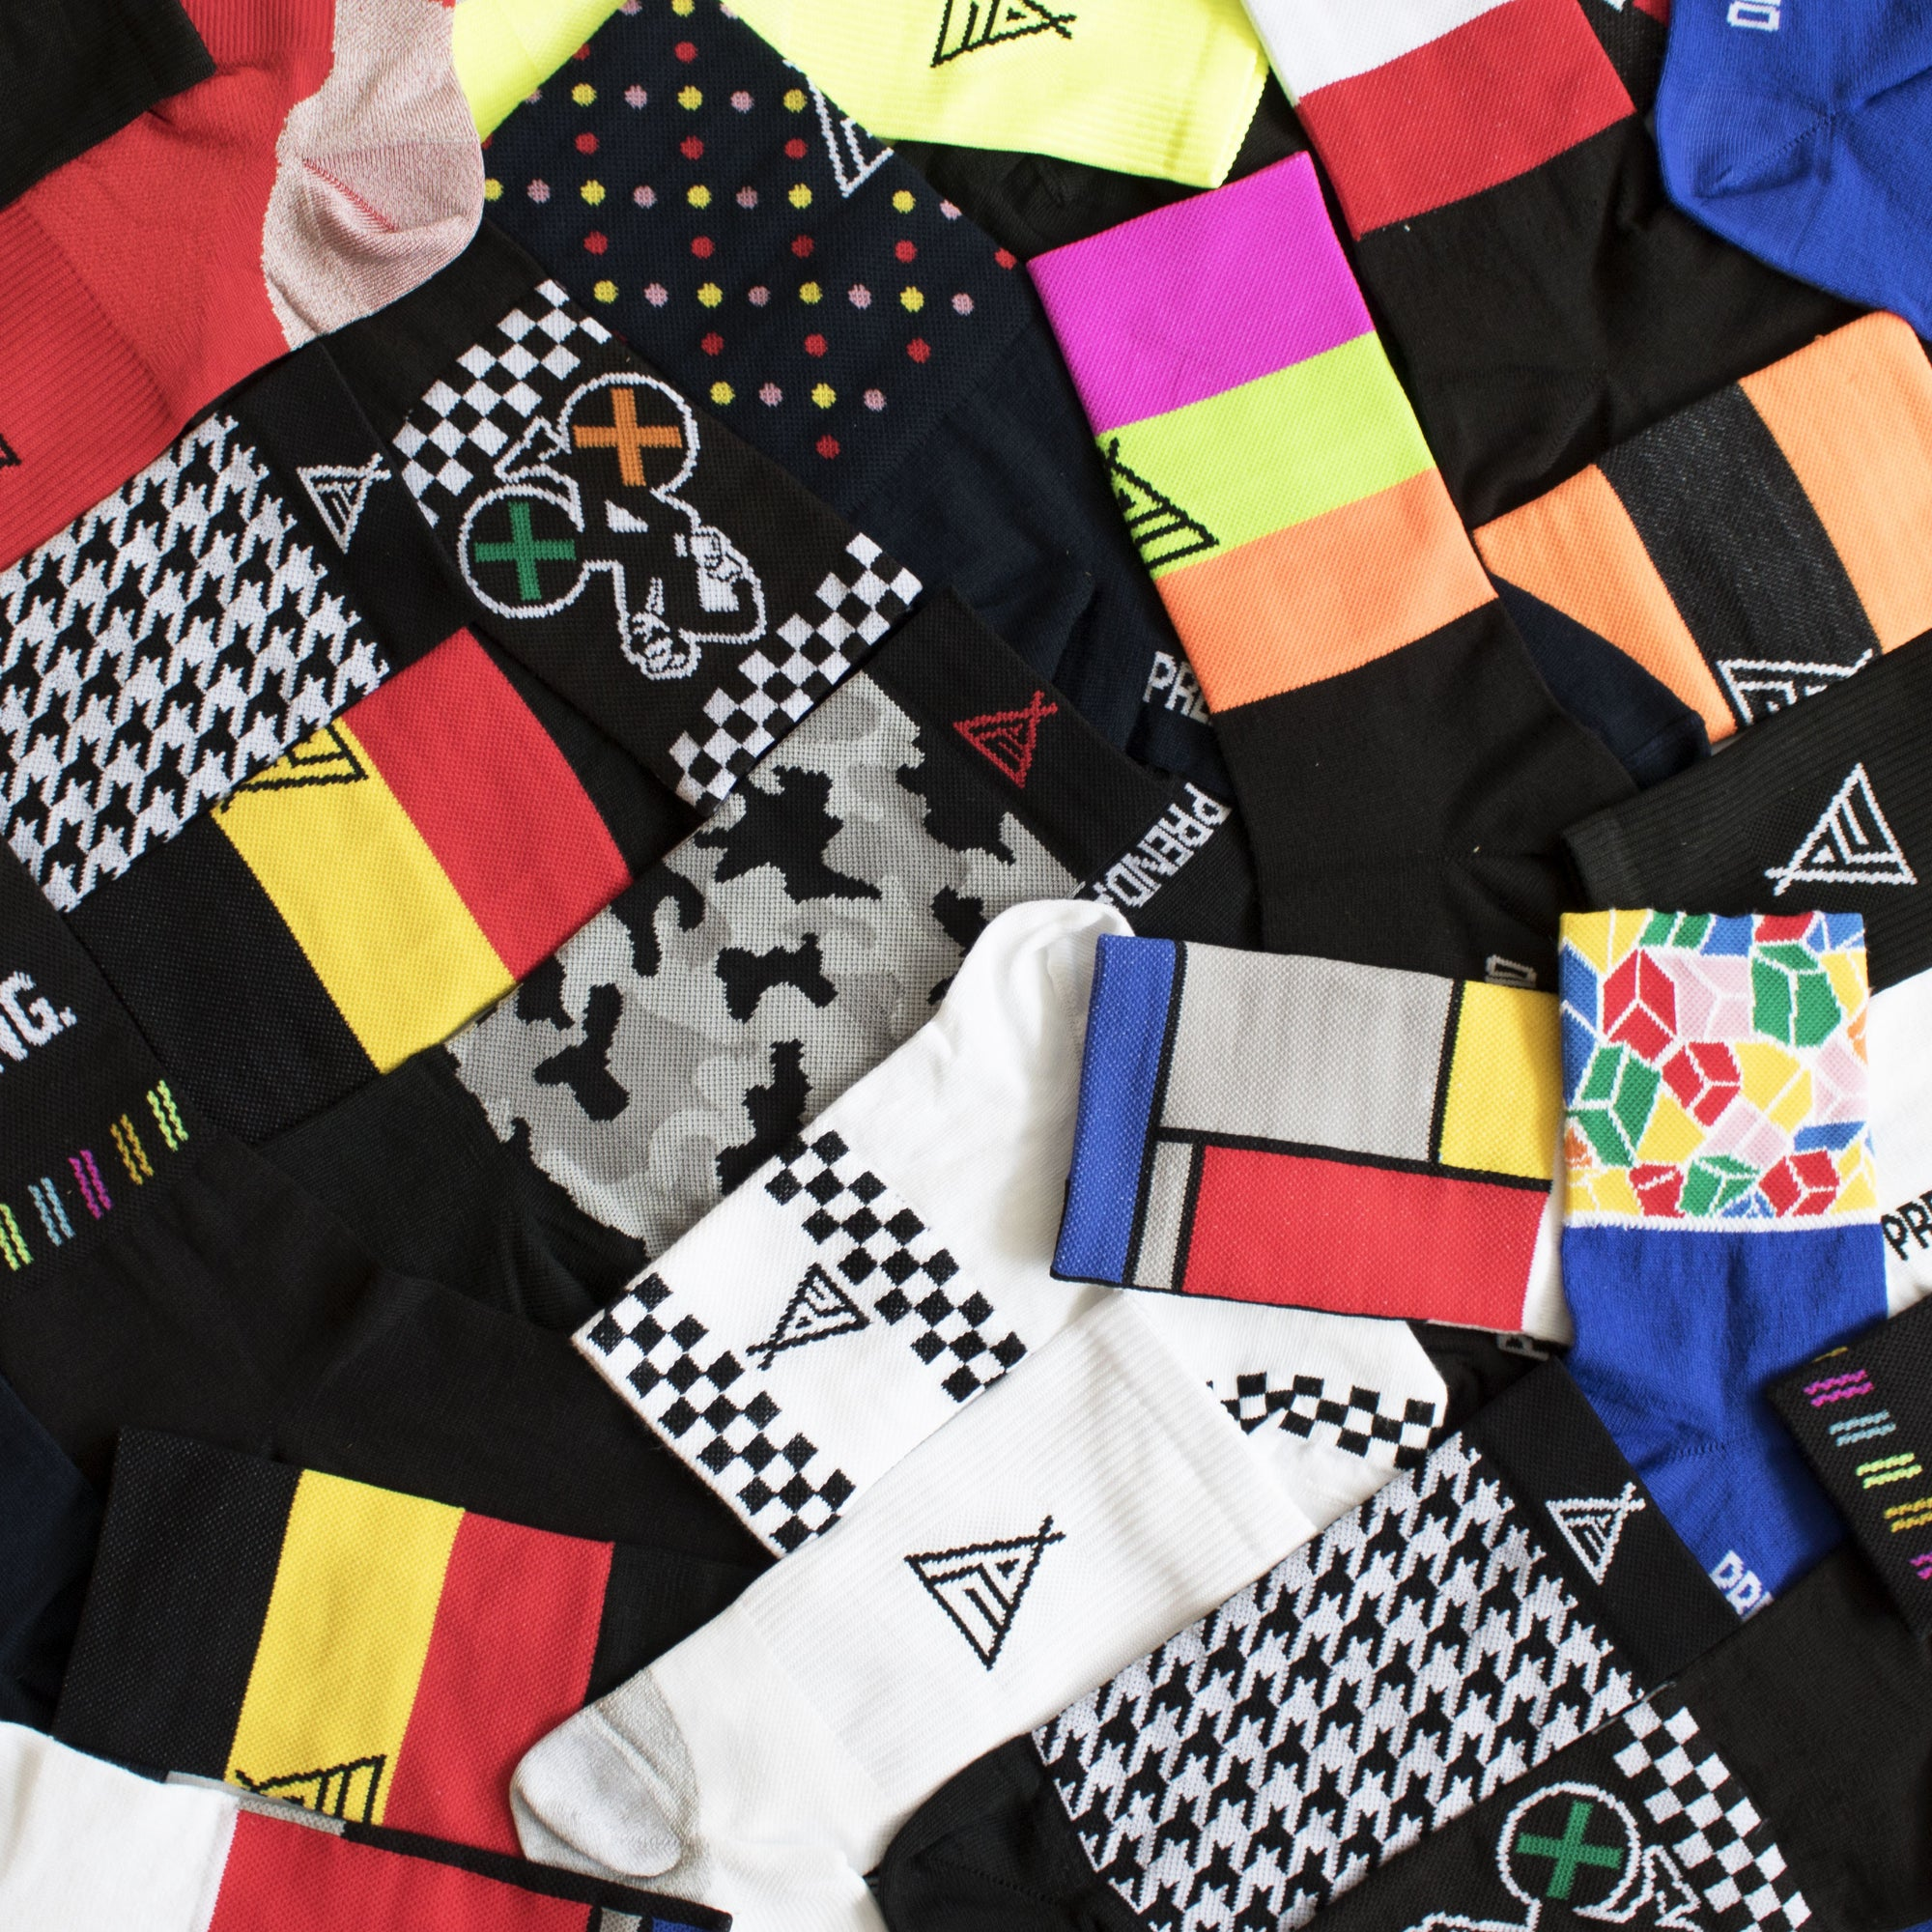 Prendas Ciclismo Quality Clothing Worldwide Delivery Great Prices